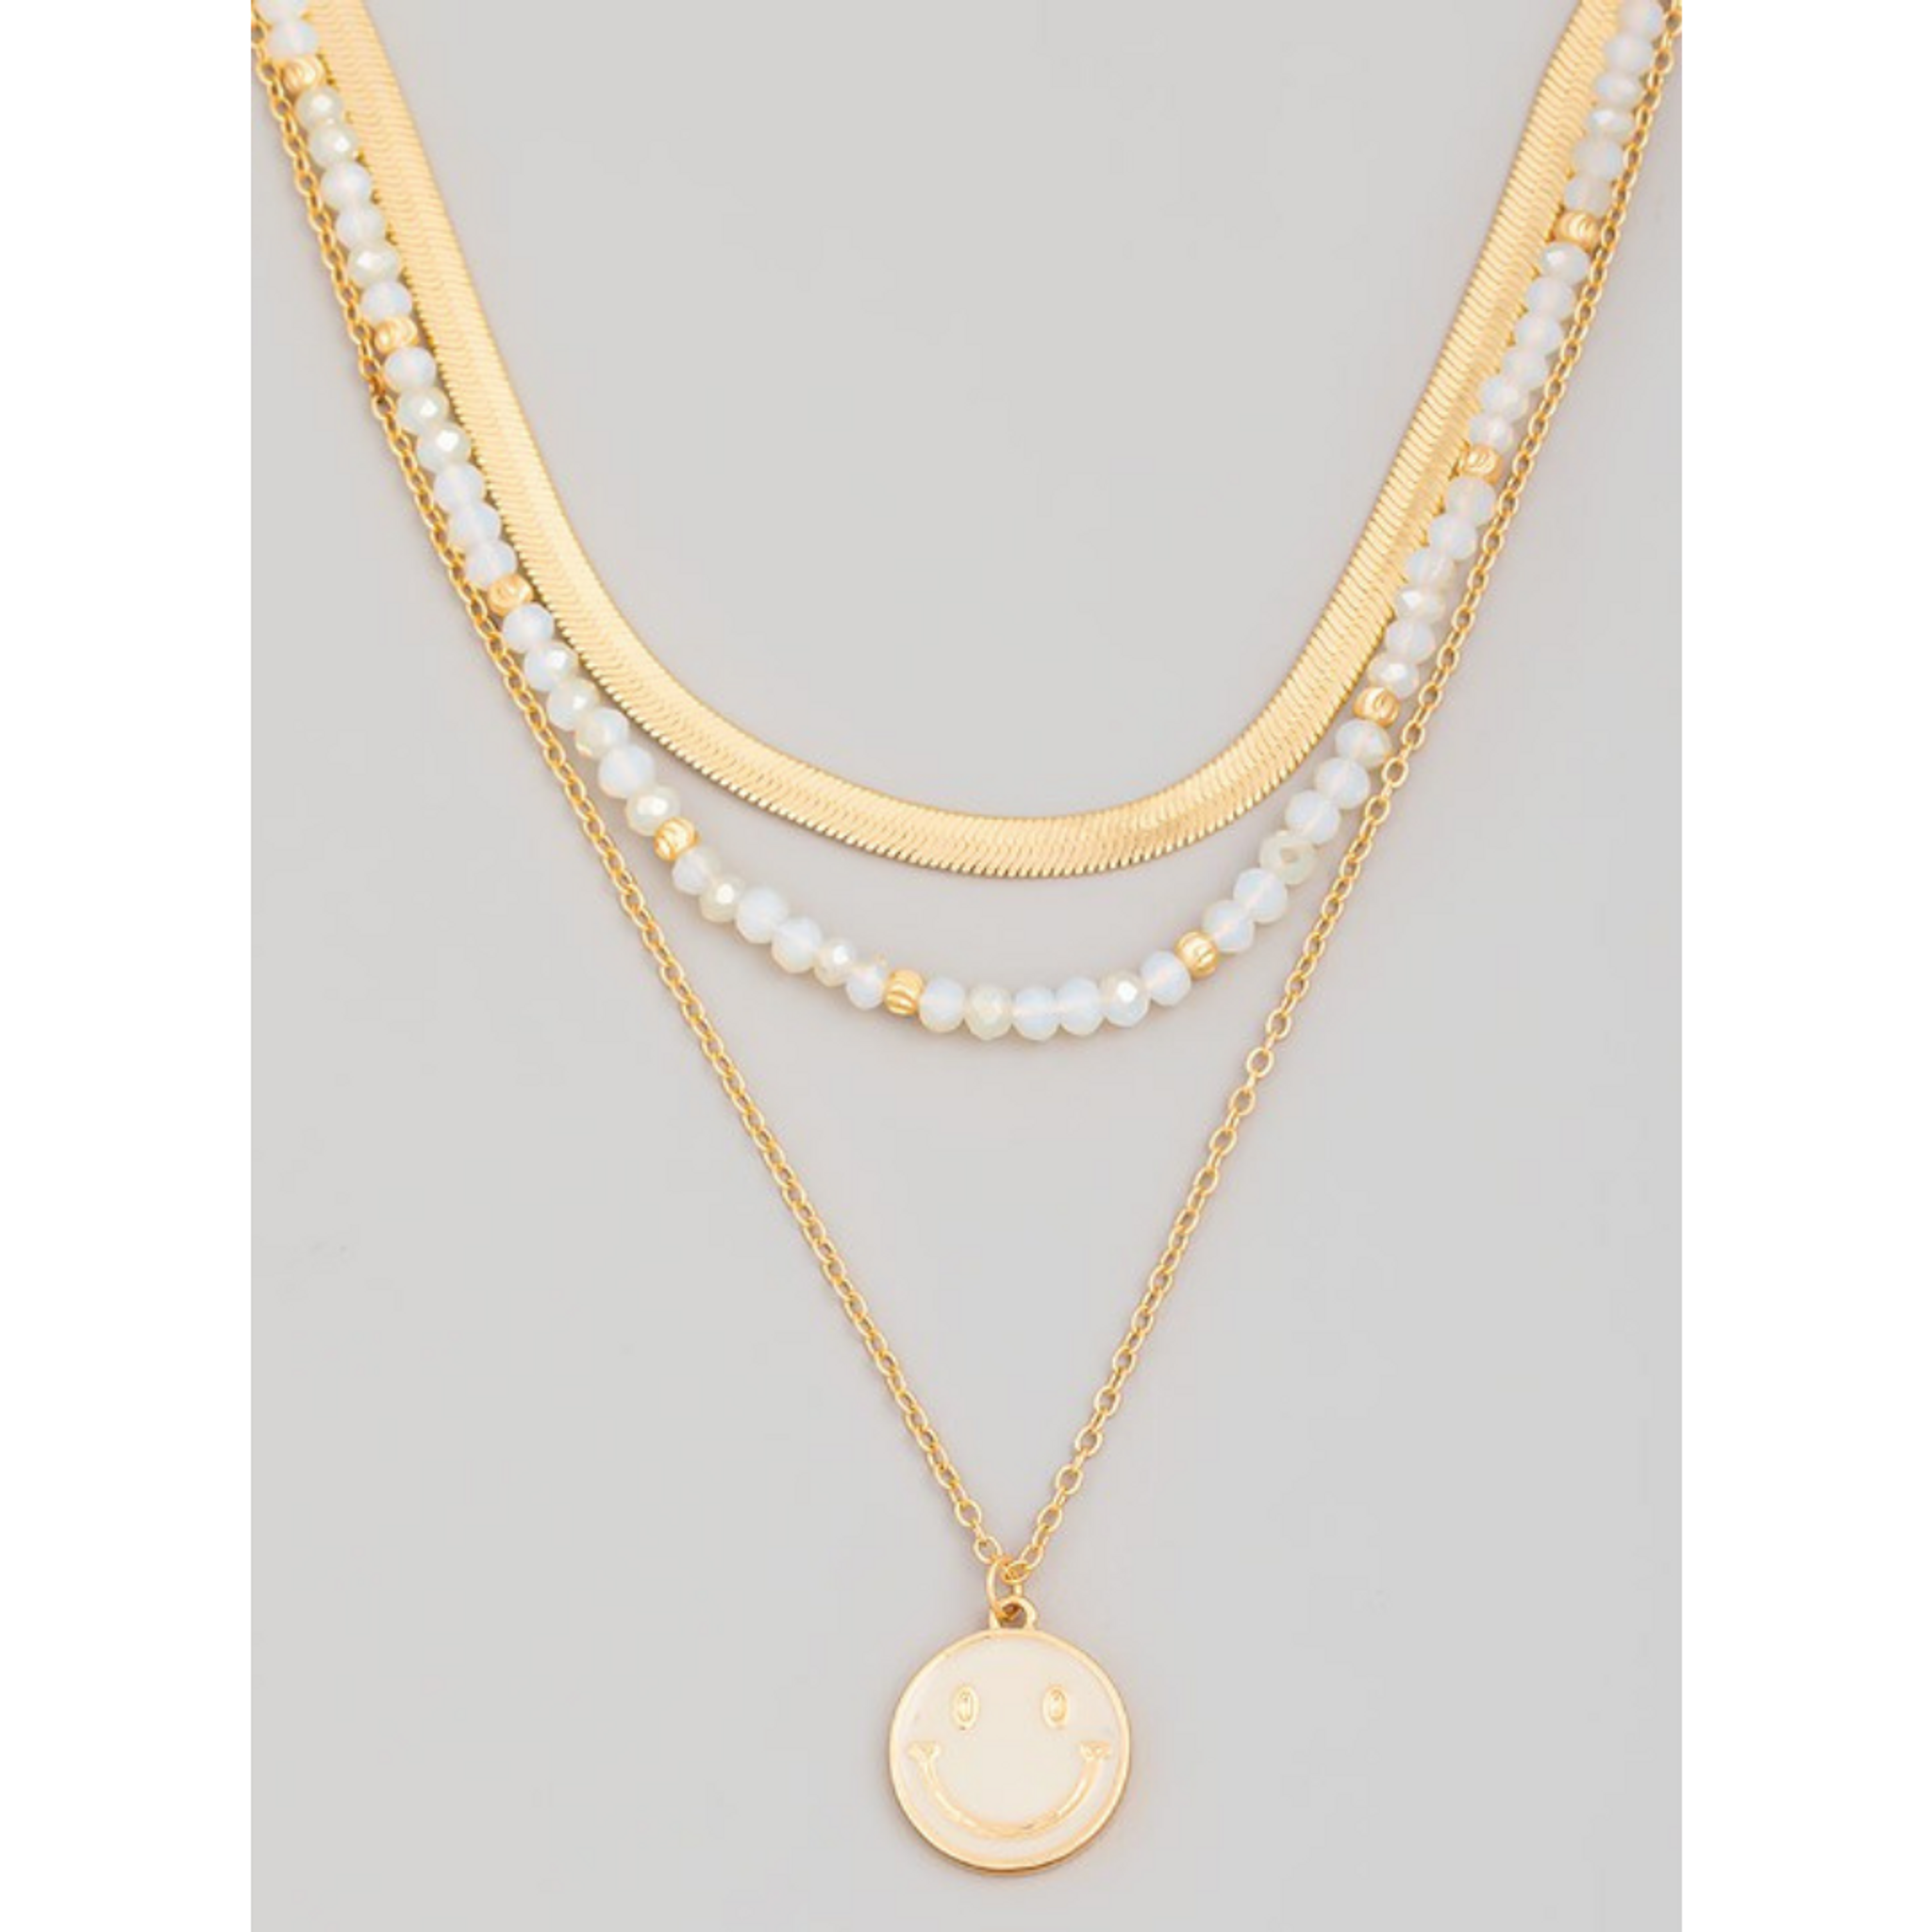 Ivory Smiley Charm Necklace